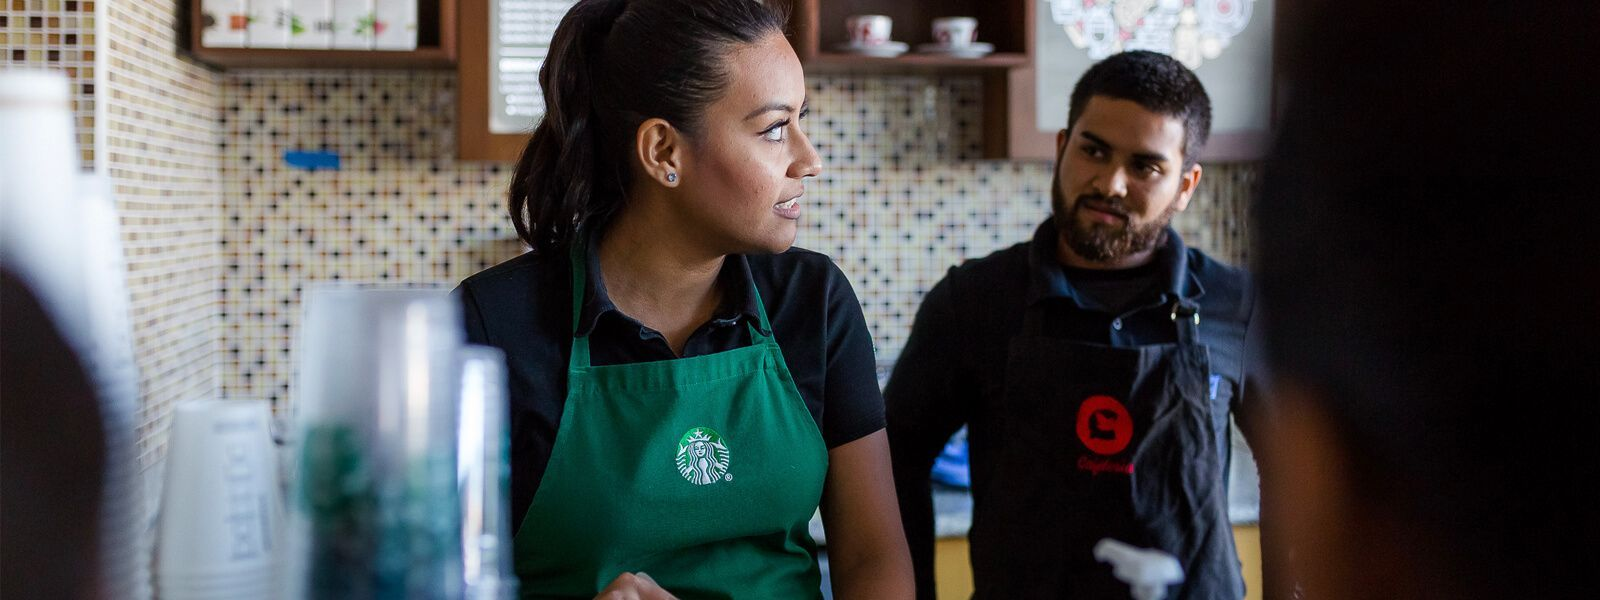 At CMQ Cafeterias, We Proudly Serve Starbucks